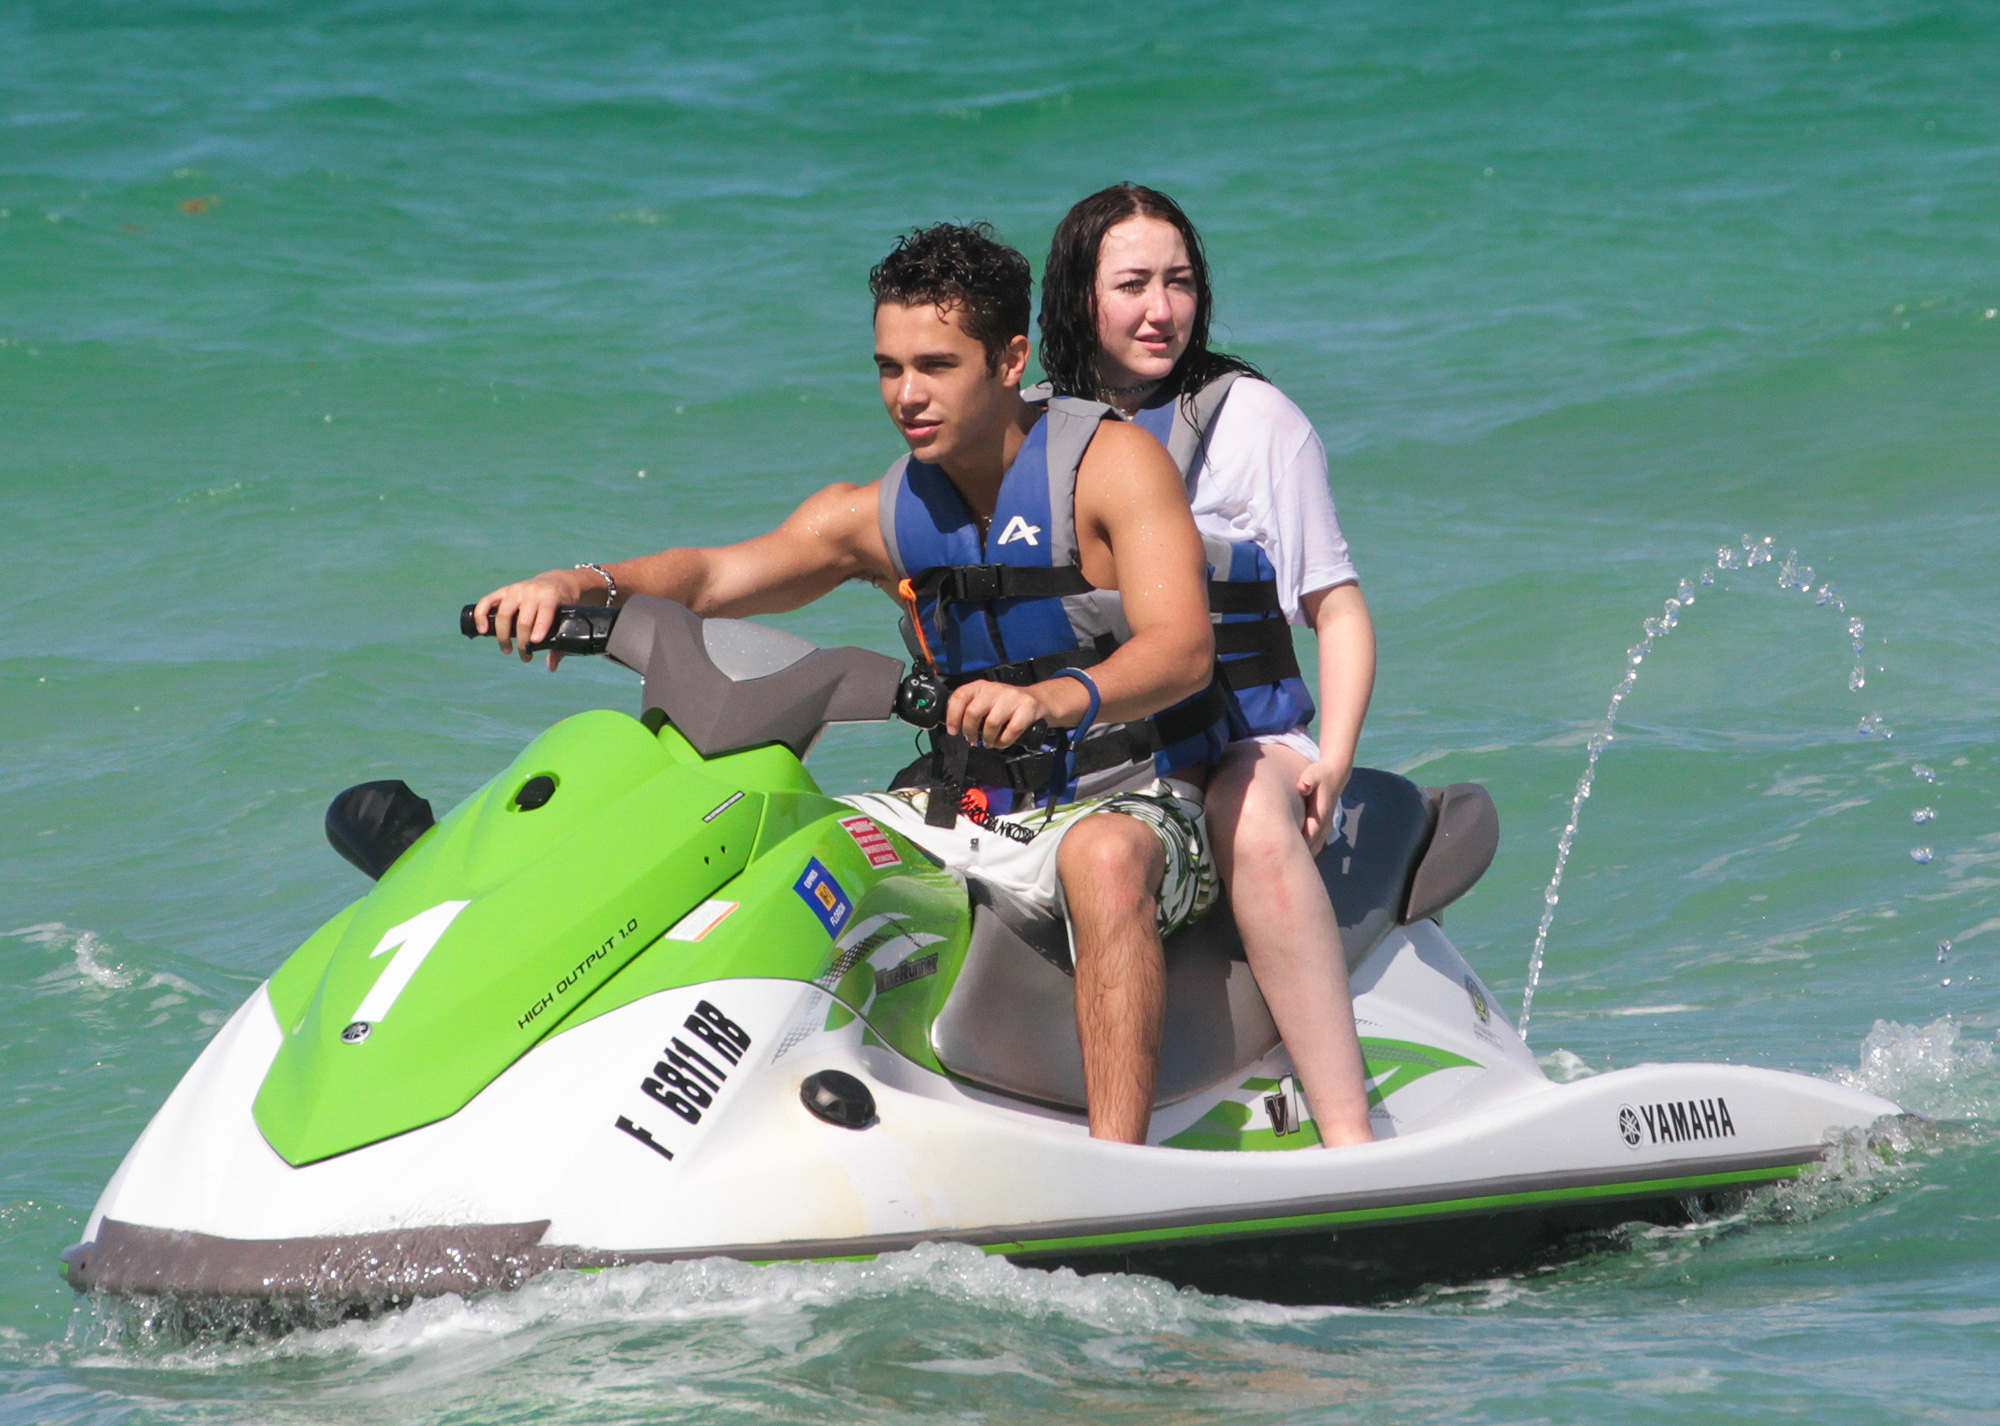 Singers Austin Mahone and Noah Cyrus riding  the waves on a Jet ski in Miami Beach